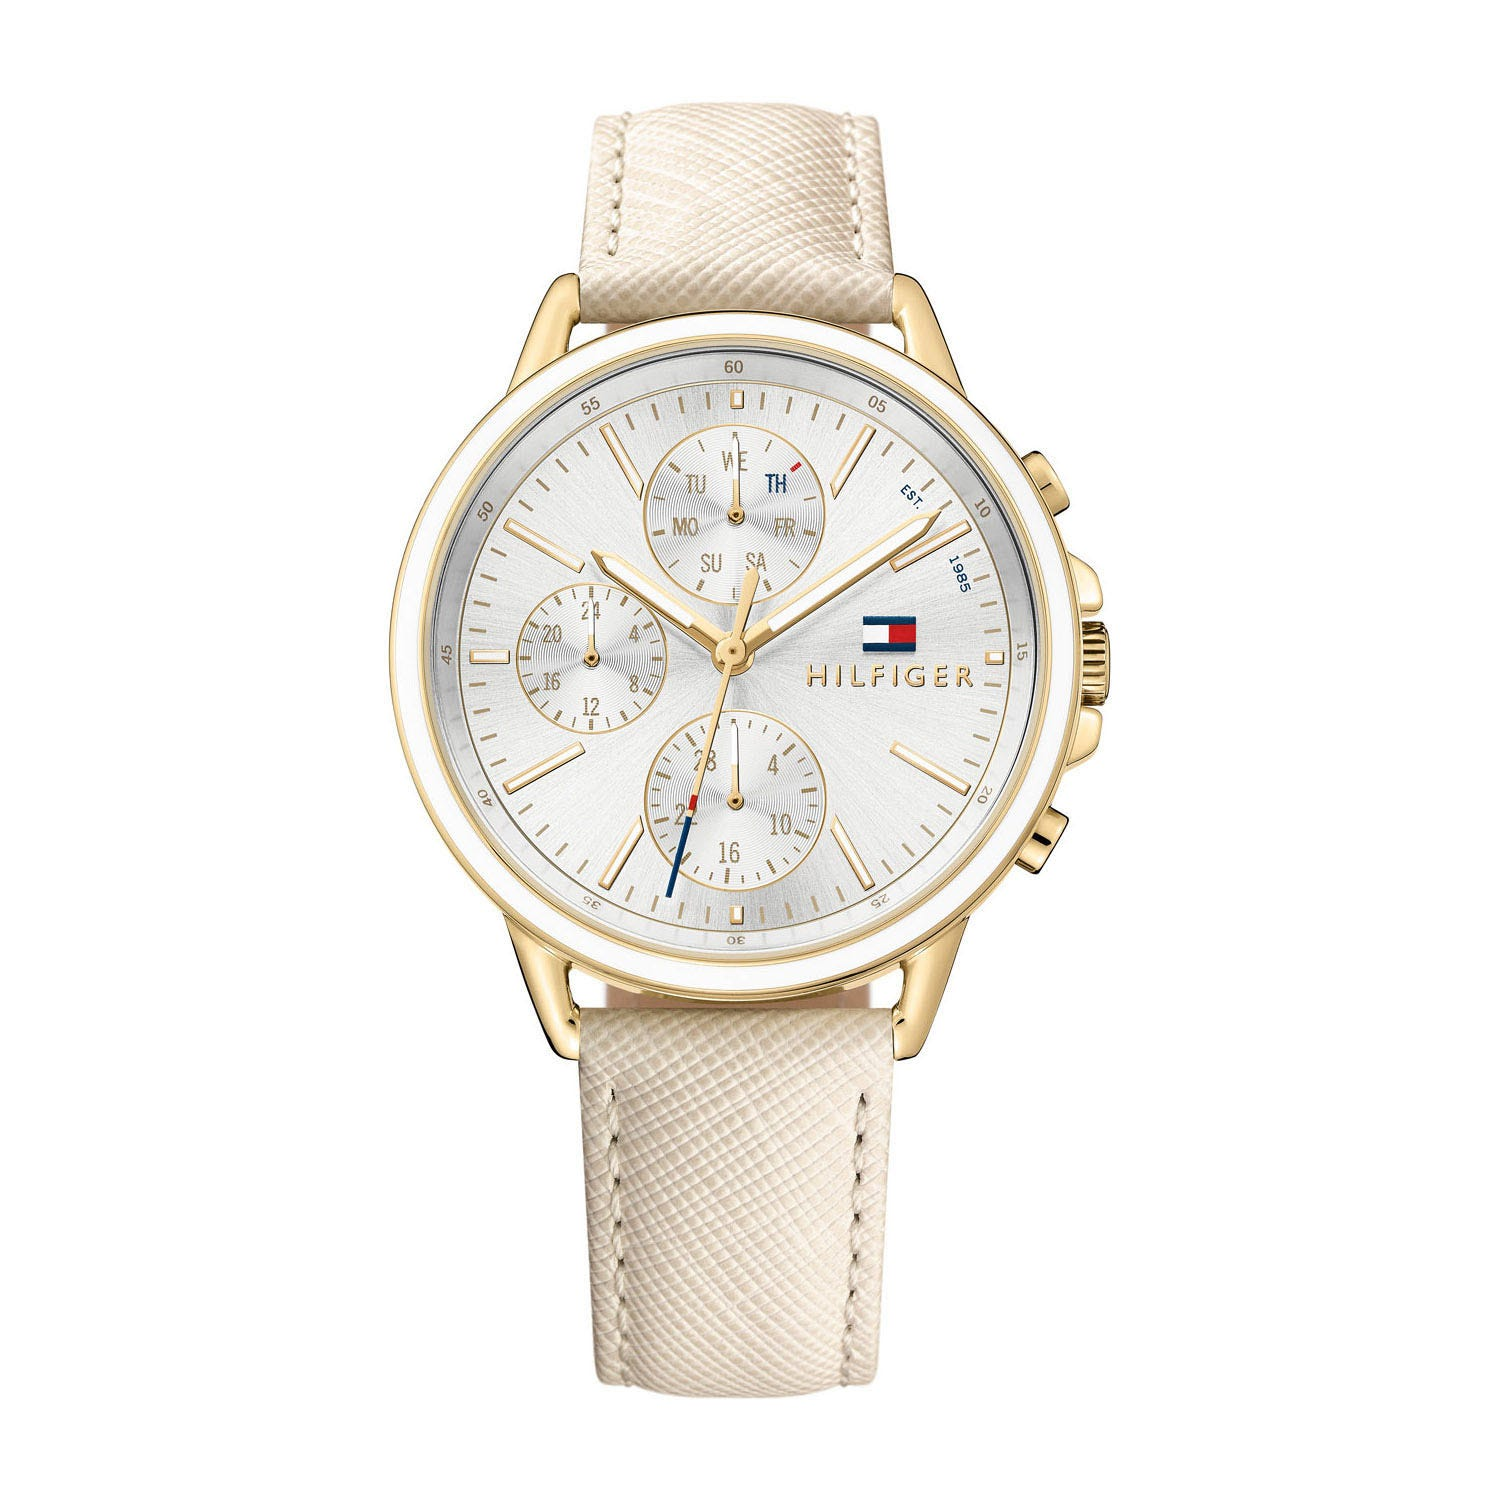 Tommy Hilfiger Silver-Tone Chronograph & Leather Strap Ladies' Watch